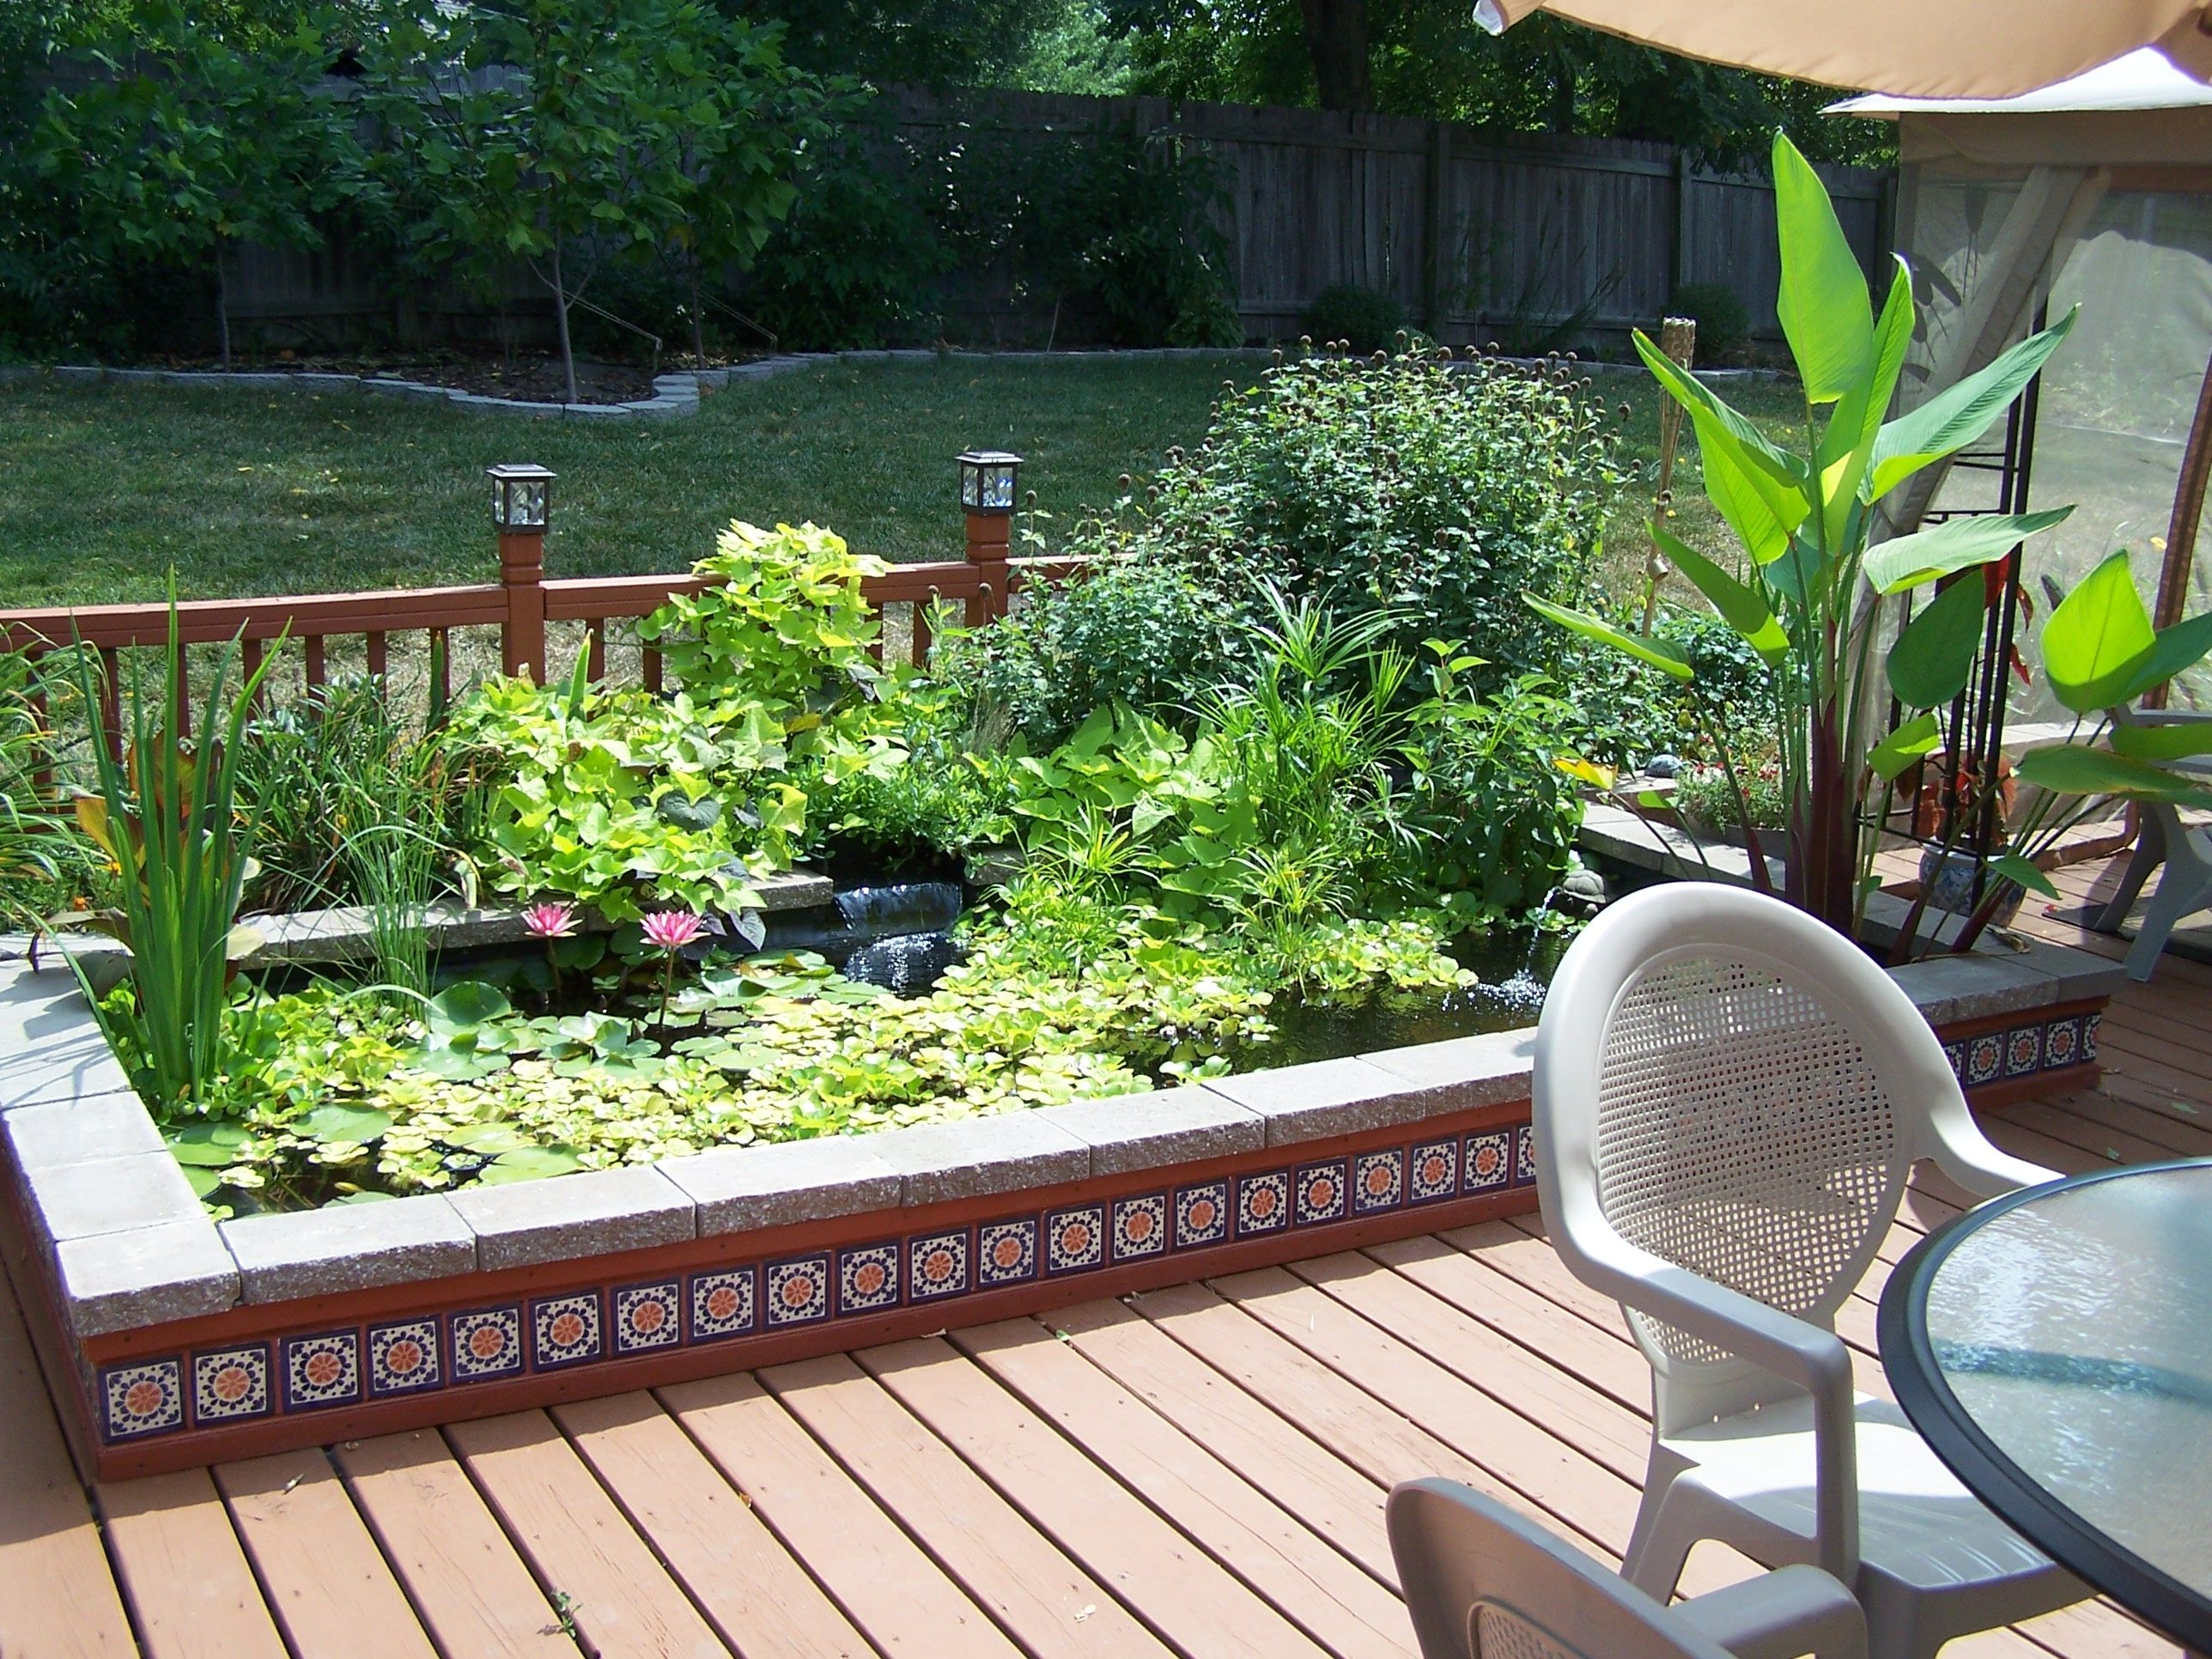 My Fish Pond Built Into The Deck